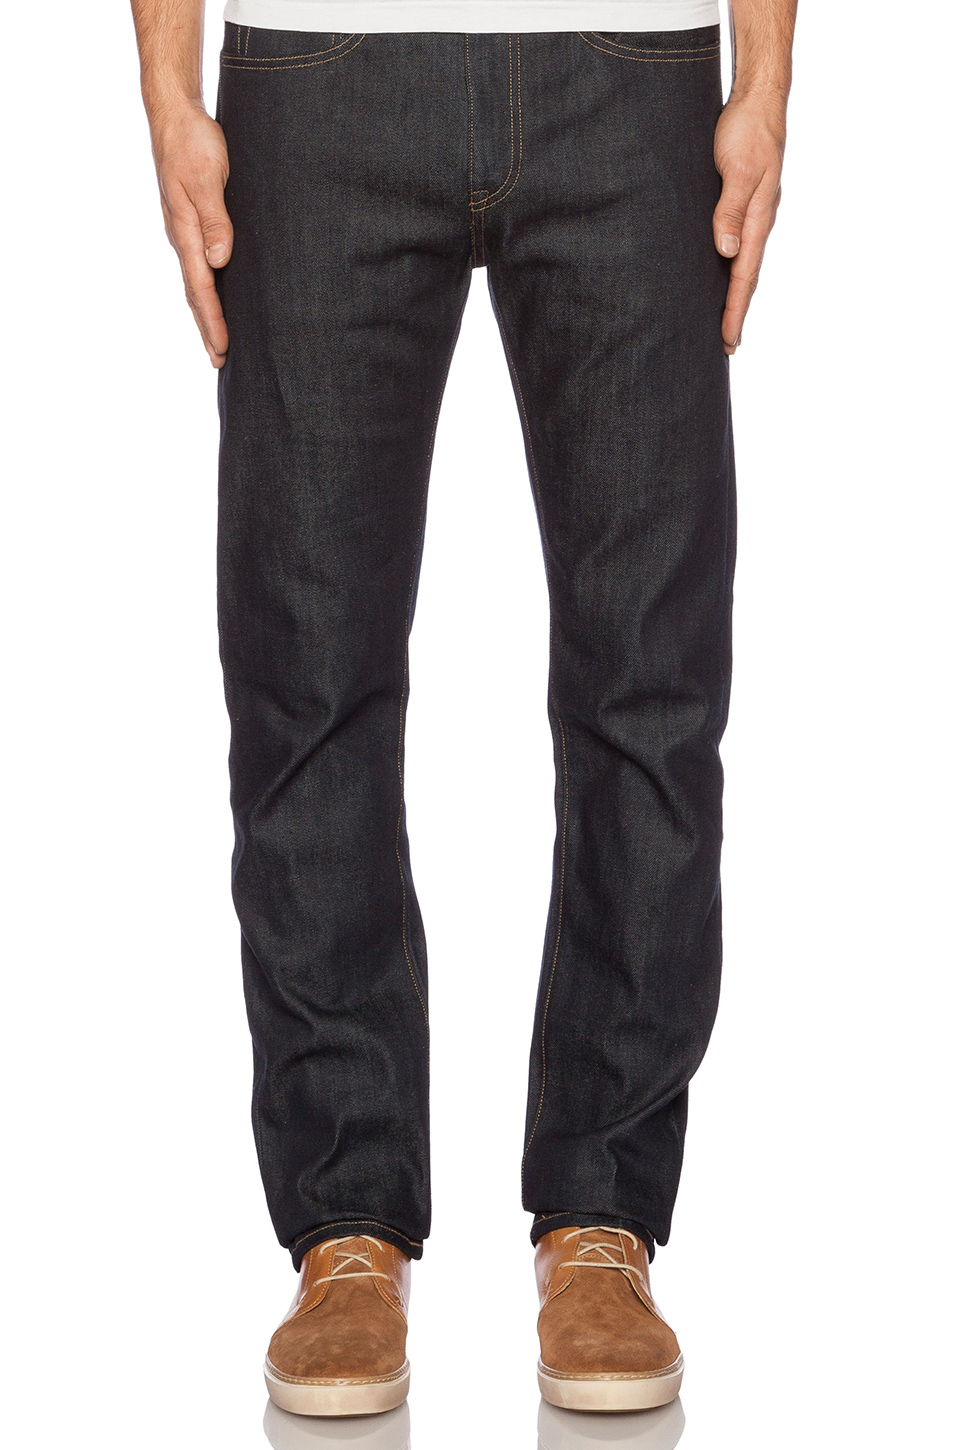 LEVI'S: Made & Crafted Tack Slim in Indigo Rigid